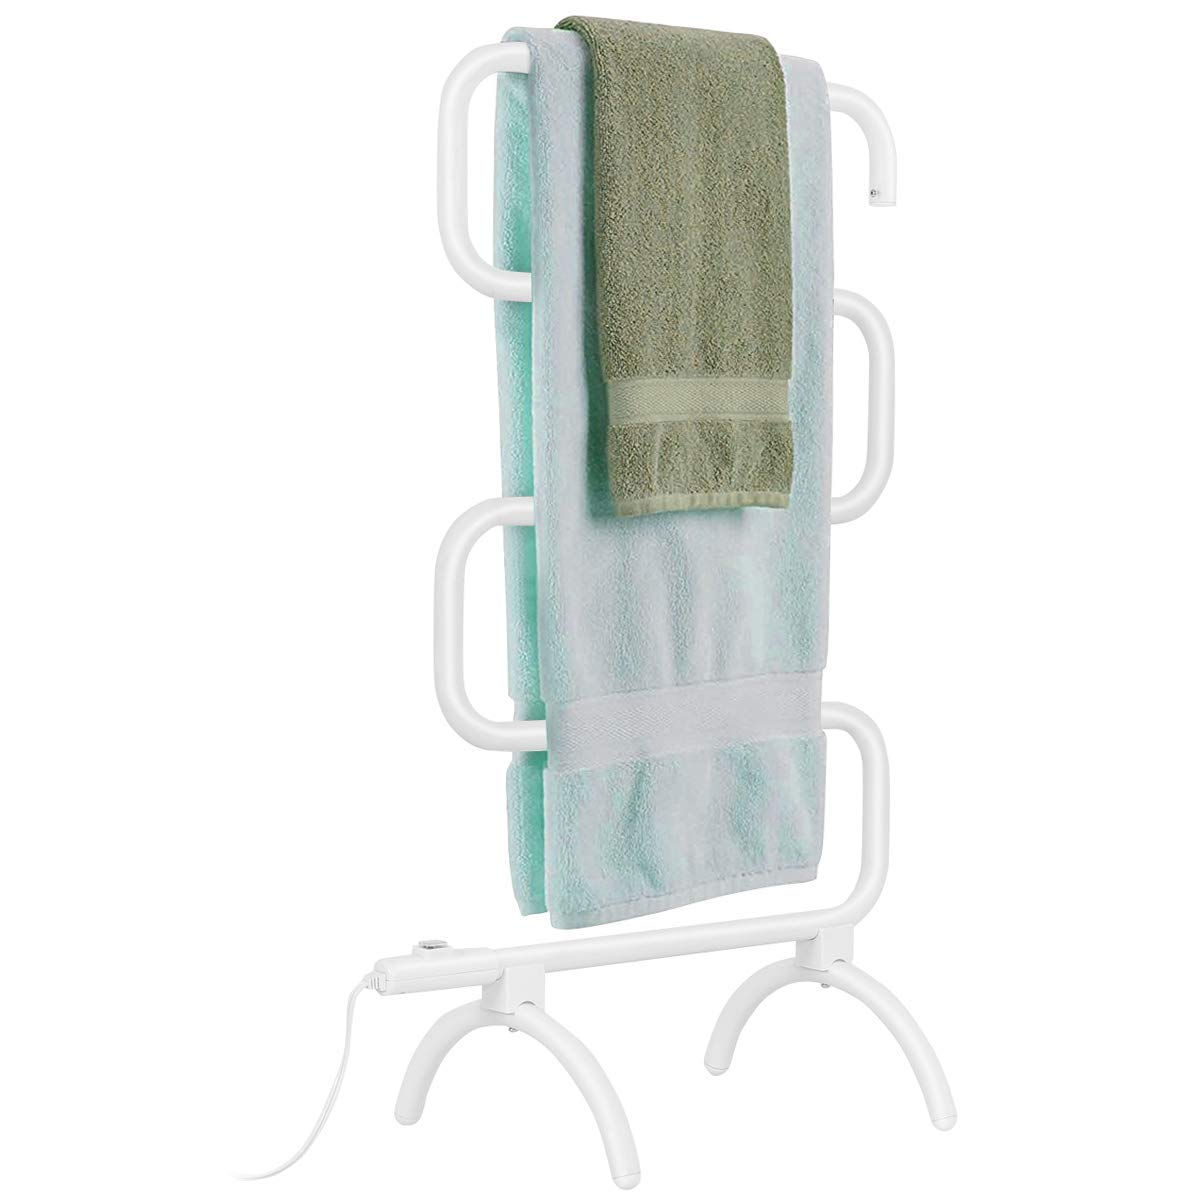 Tangkula Towel Warmer, Home Bathroom 100W Electric 5-Bar Towel Drying Rack, Freestanding and Wall Mounted Design Towel Hanger, Towel Heater, White (23''L x 13''W x 36''H) by Tangkula